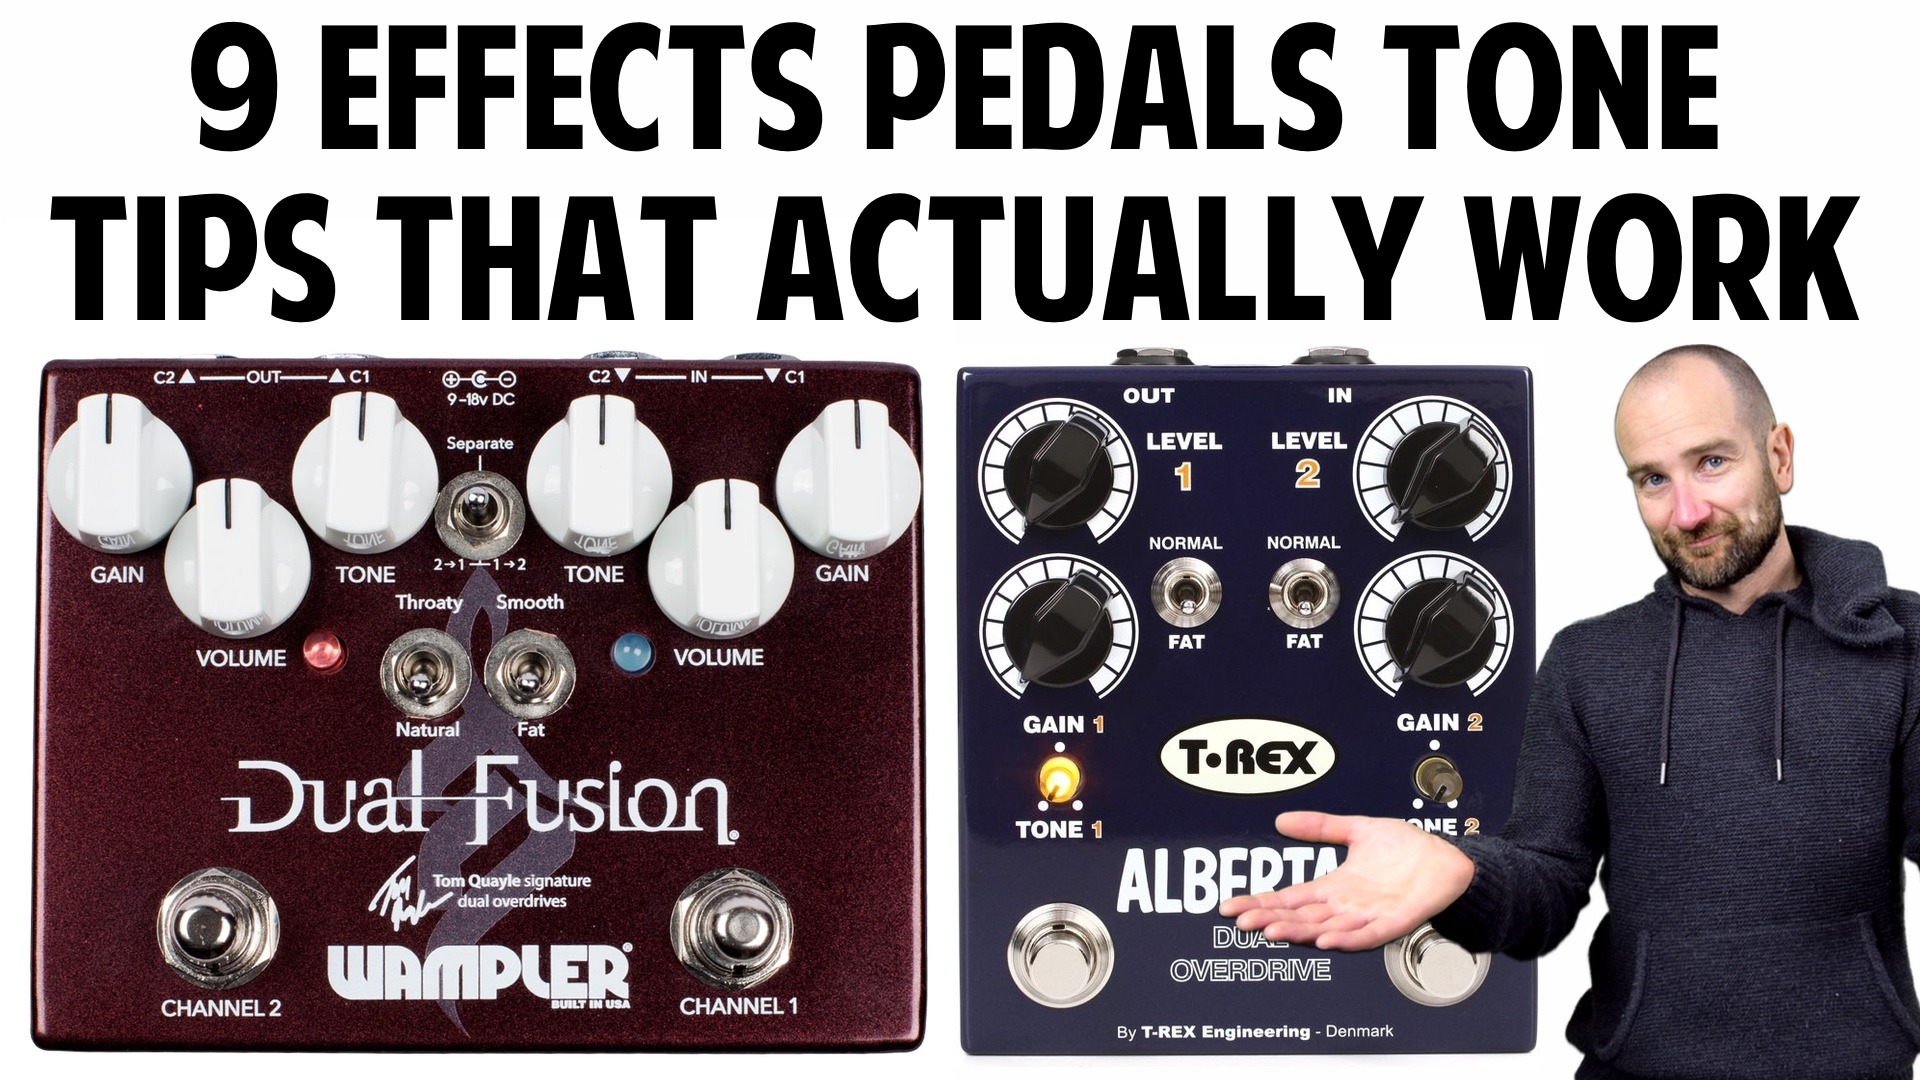 9 effects pedals tone tips that actually work